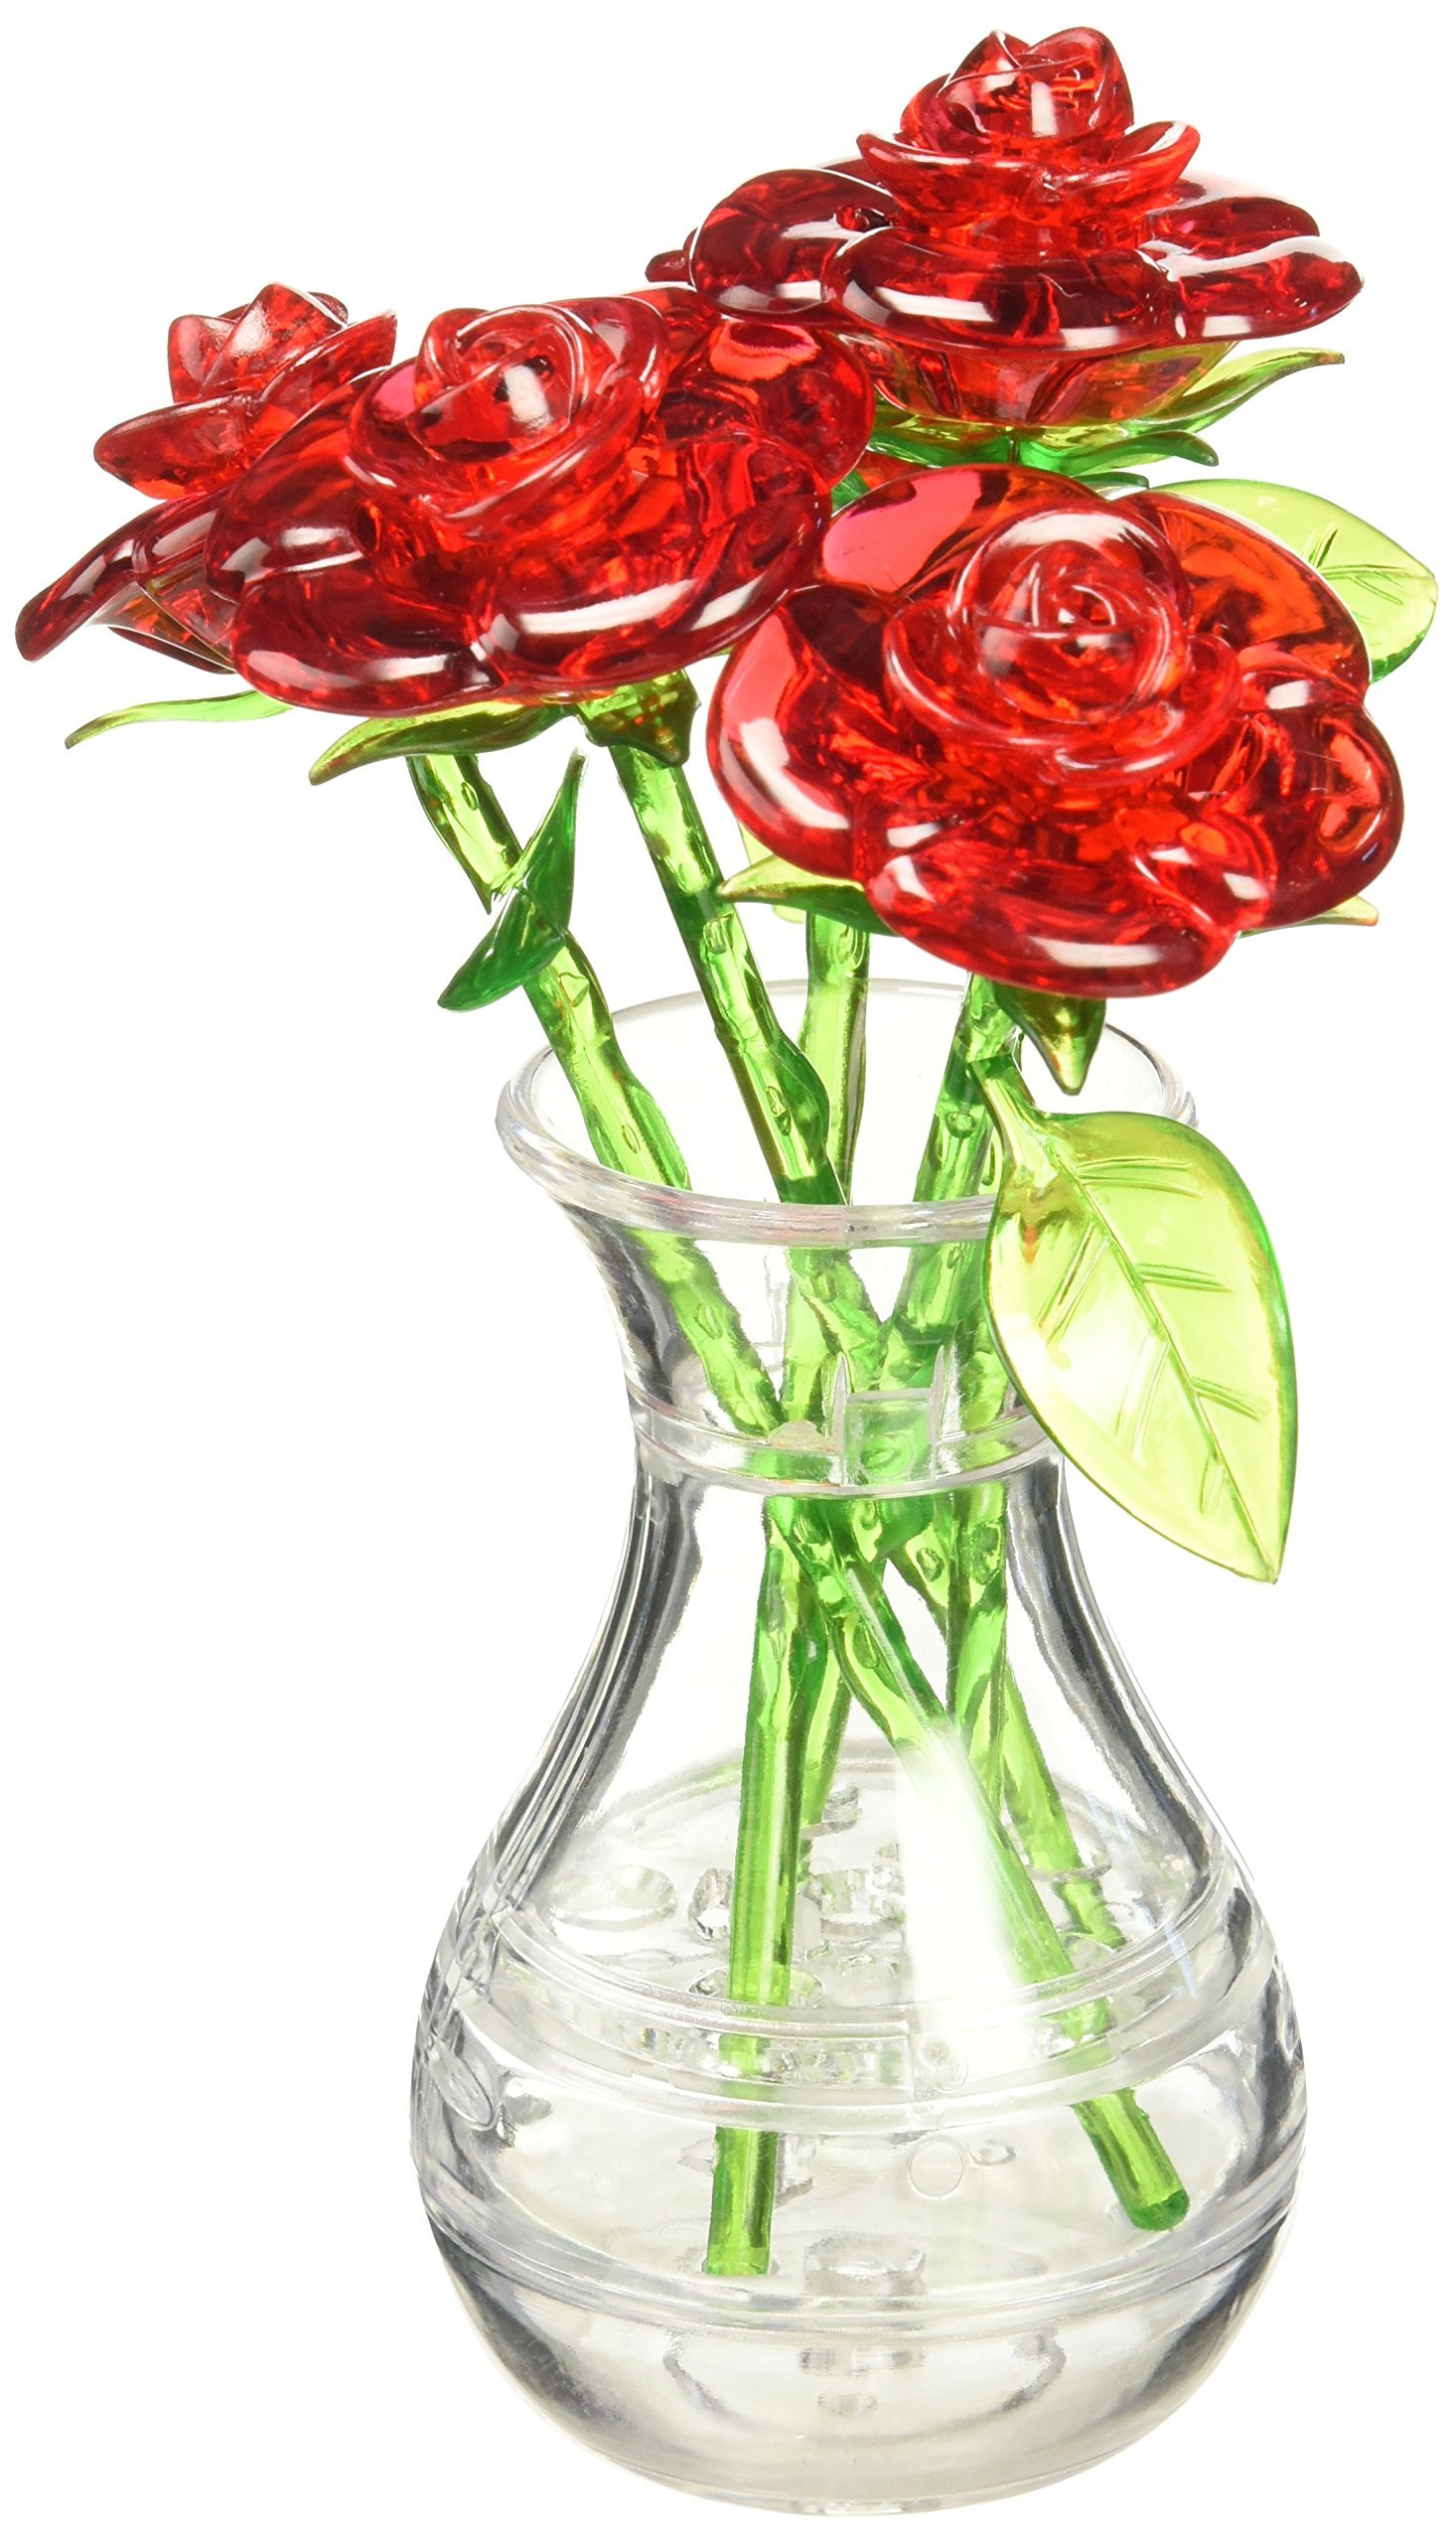 Amazon diy 3d crystal puzzle rose redyellowpinkblue bepuzzled original 3d roses in a vase crystal puzzle reviewsmspy